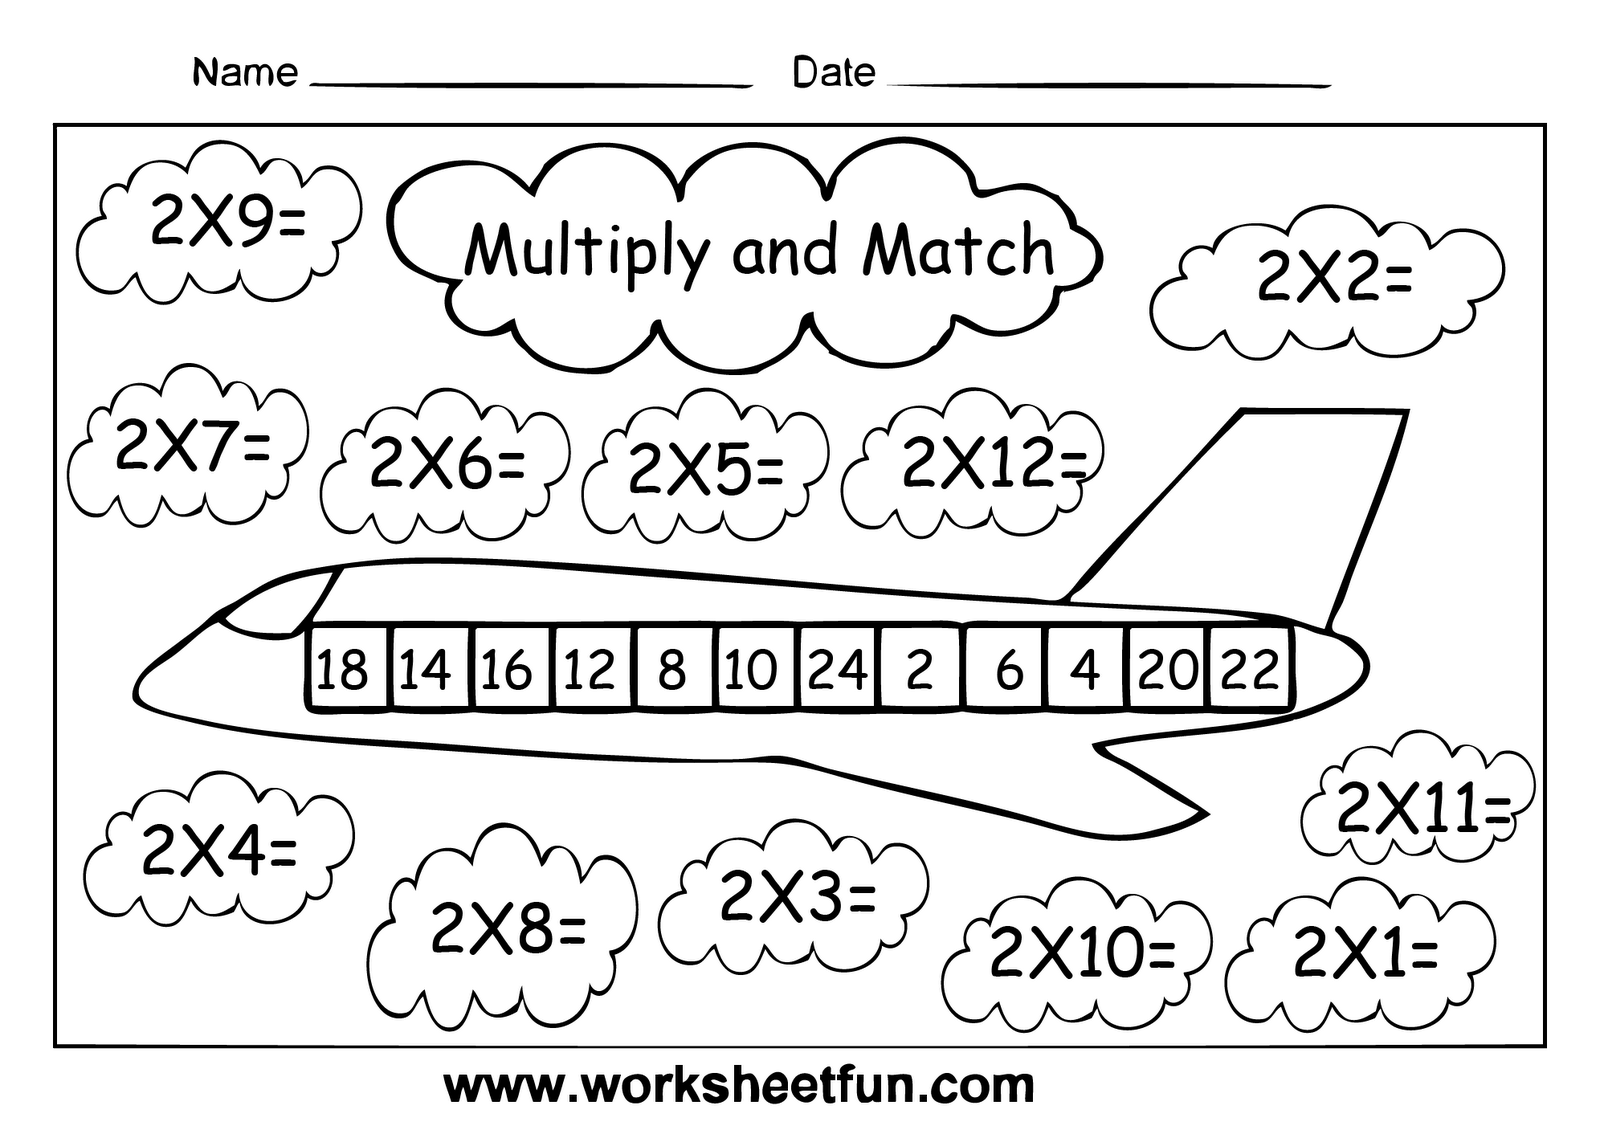 math worksheet : multiplication table worksheets for grade 2  grade worksheets : Worksheet On Multiplication For Grade 2